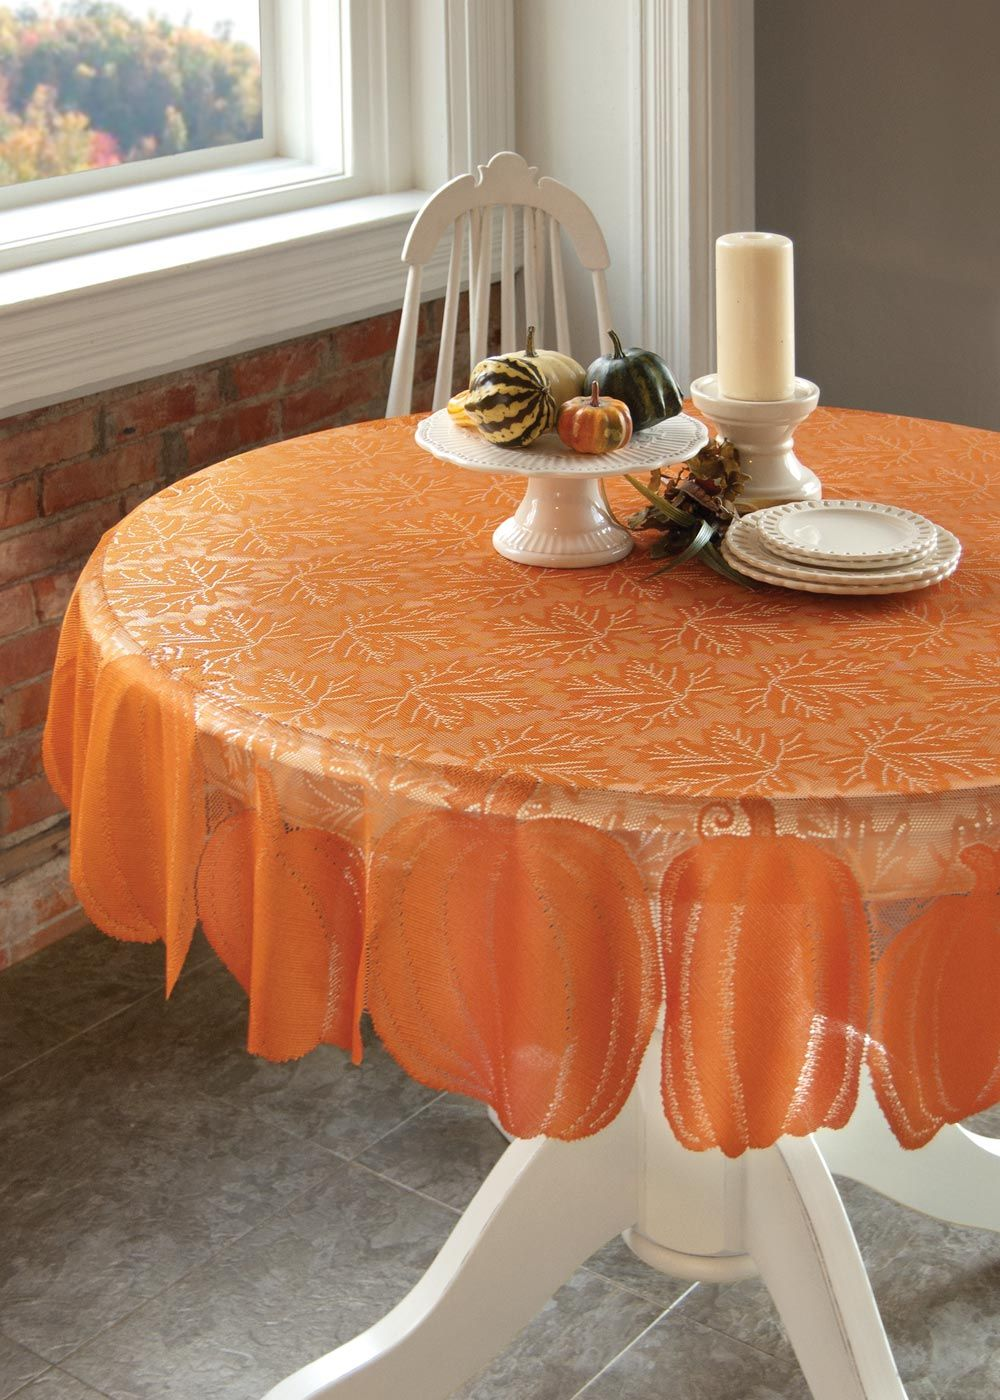 Dining Room Table Toppers Amusing Our Pumpkin Round Table Topper Packs A Punch Of Festive Orange Review